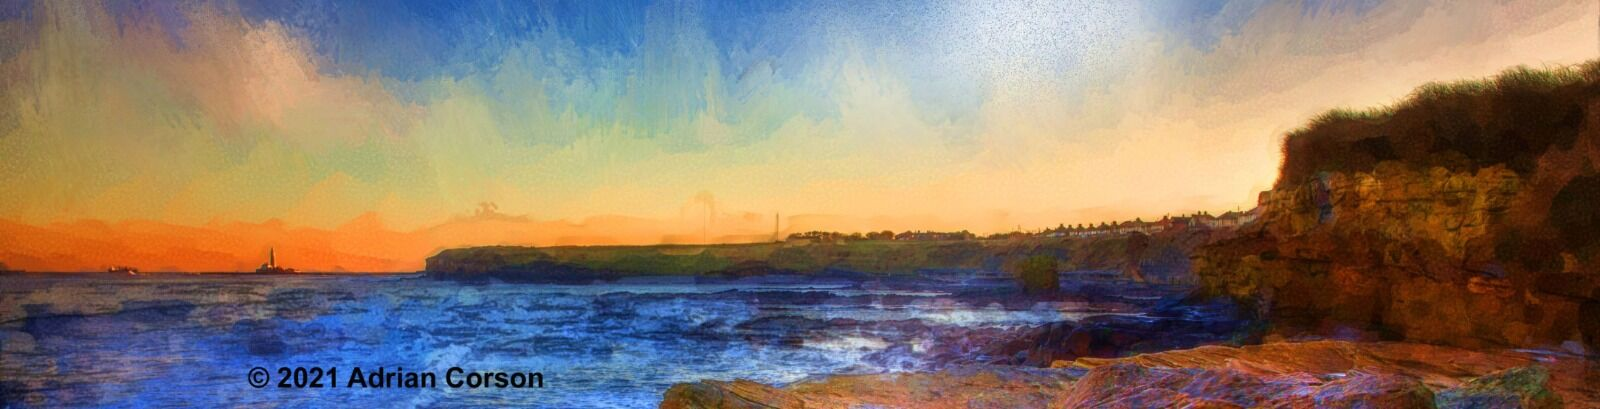 174-view to distant lighthouse